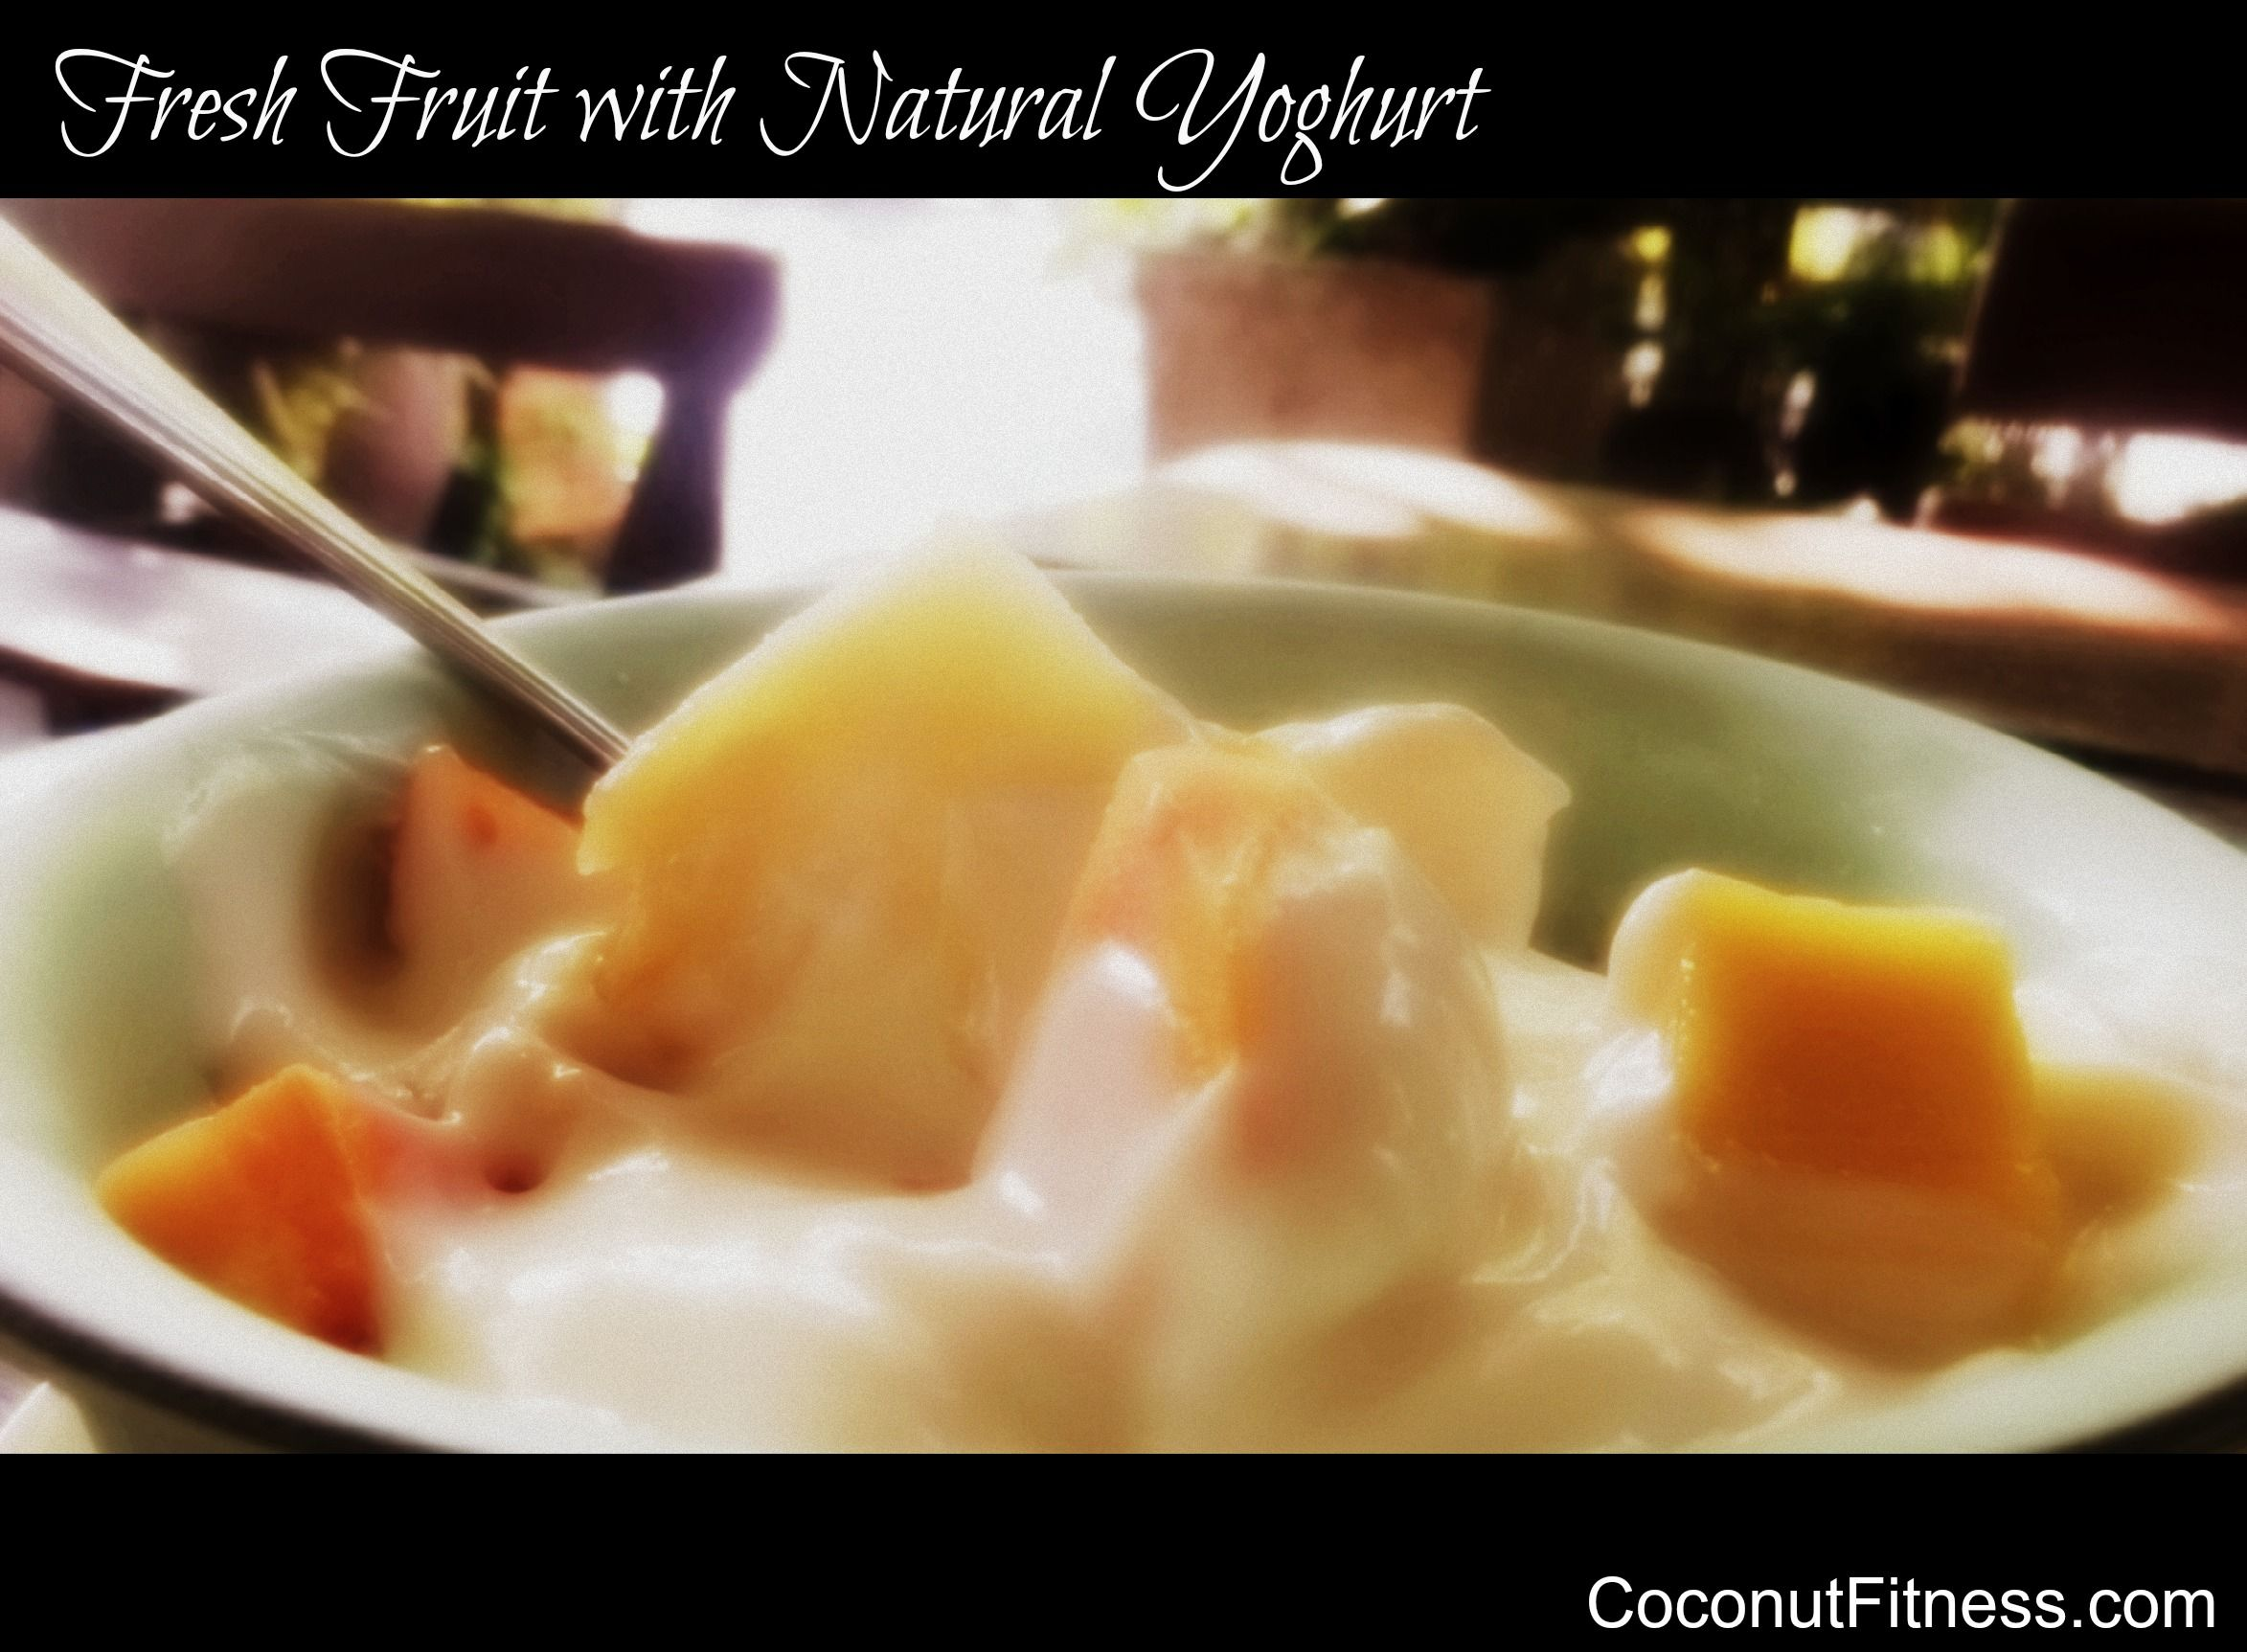 Fresh fruit salad with natural yoghurt, add in nuts and seeds for a good metabolic typing breakfast www.coconutfitness.com